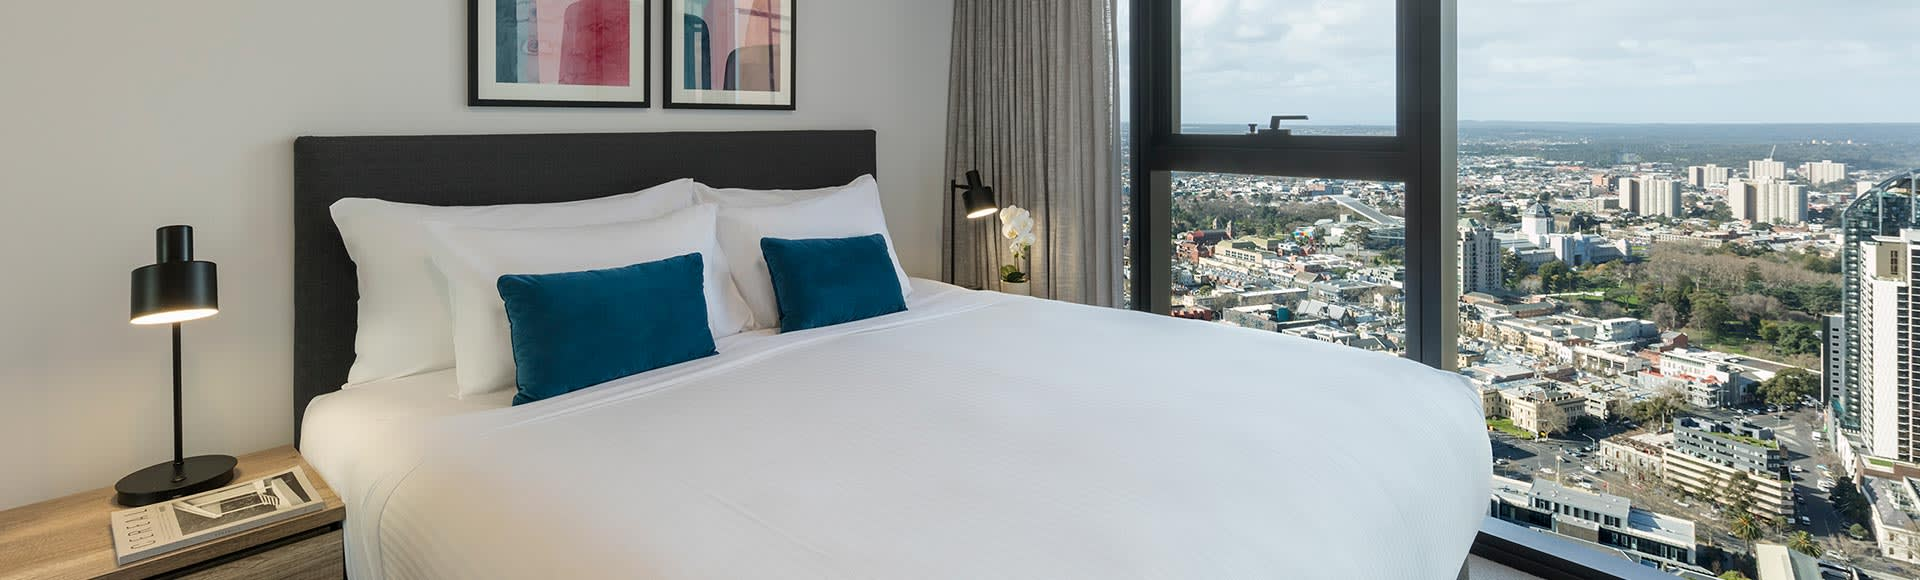 Avani Melbourne Central Residences 2 Bedroom Suite Bedroom